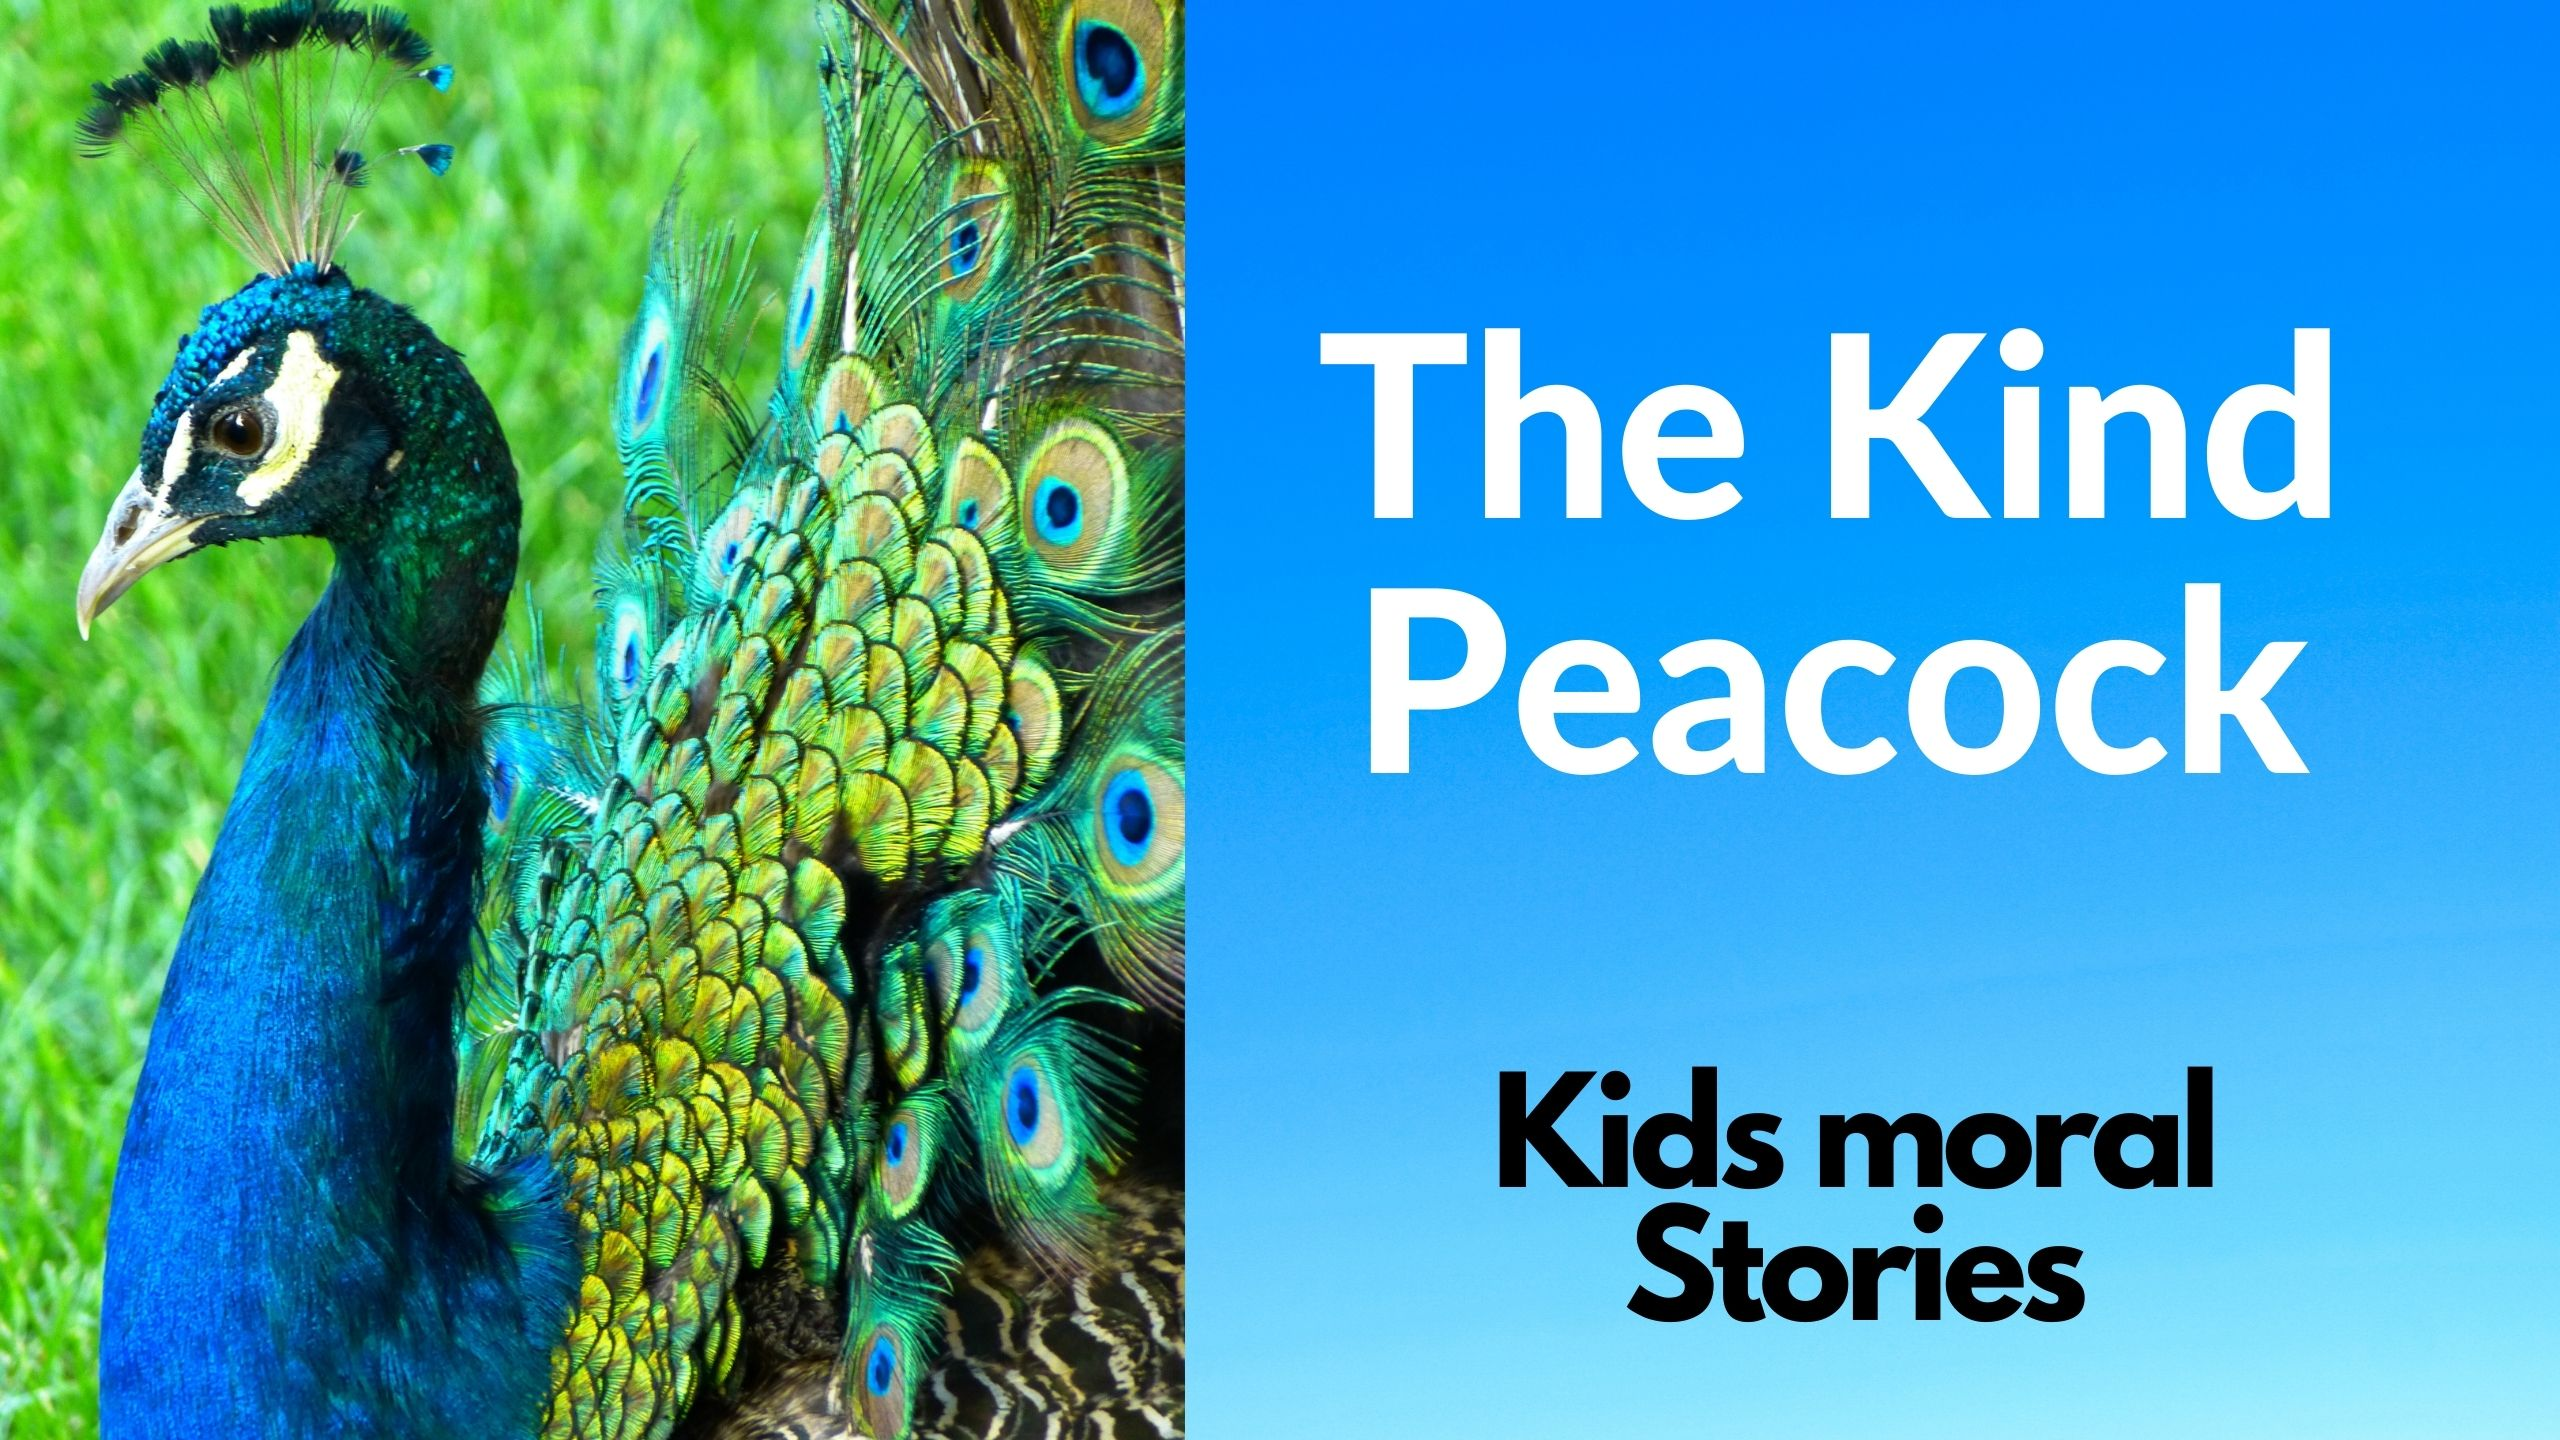 The kind peacock - kids moral stories